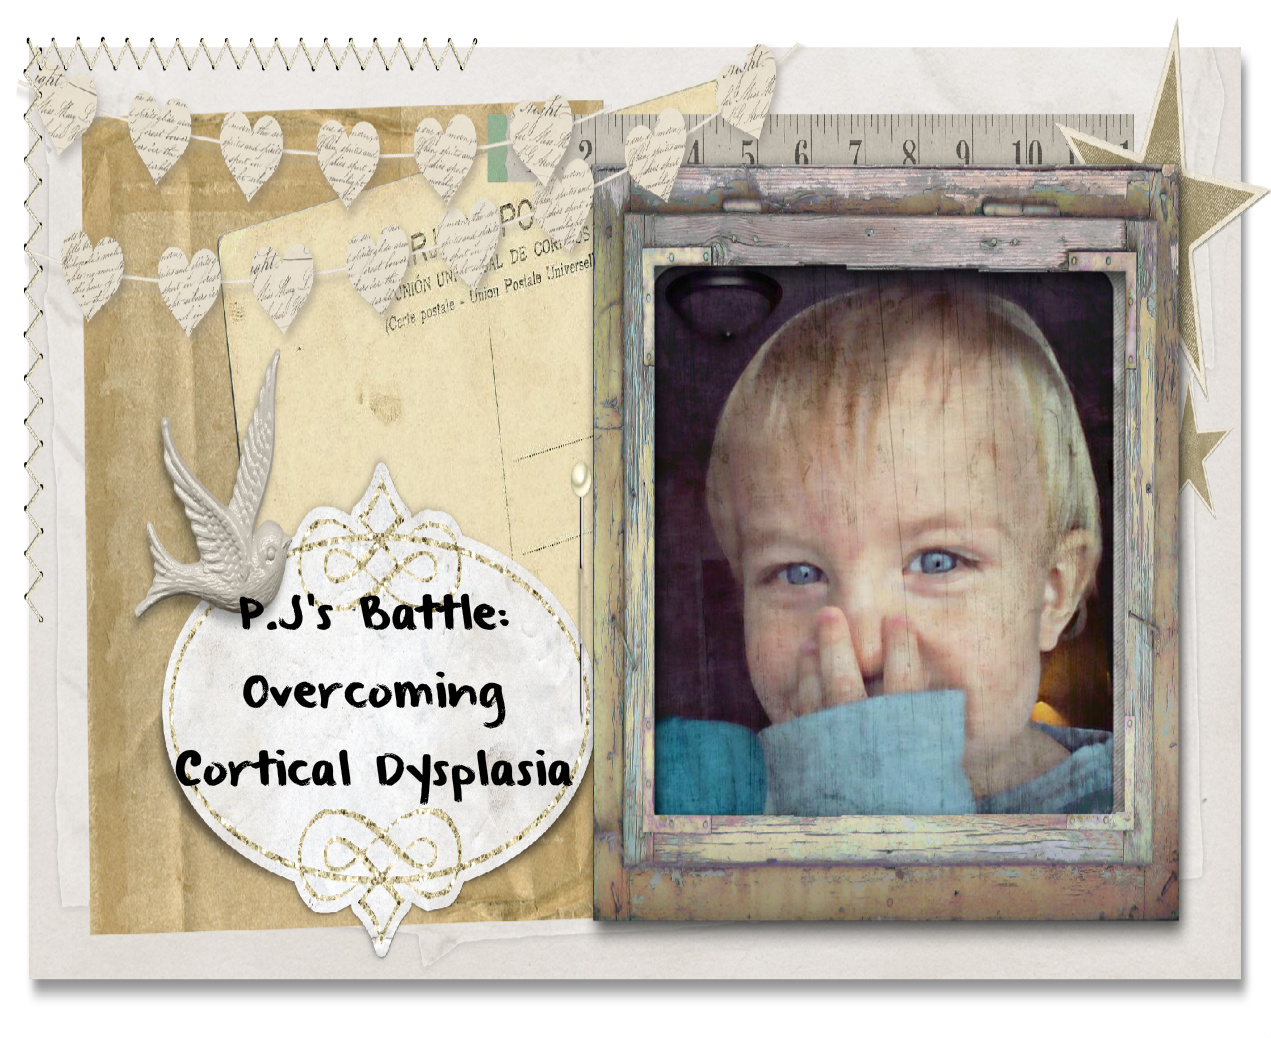 P.J's Battle: Overcoming Cortical Dysplasia